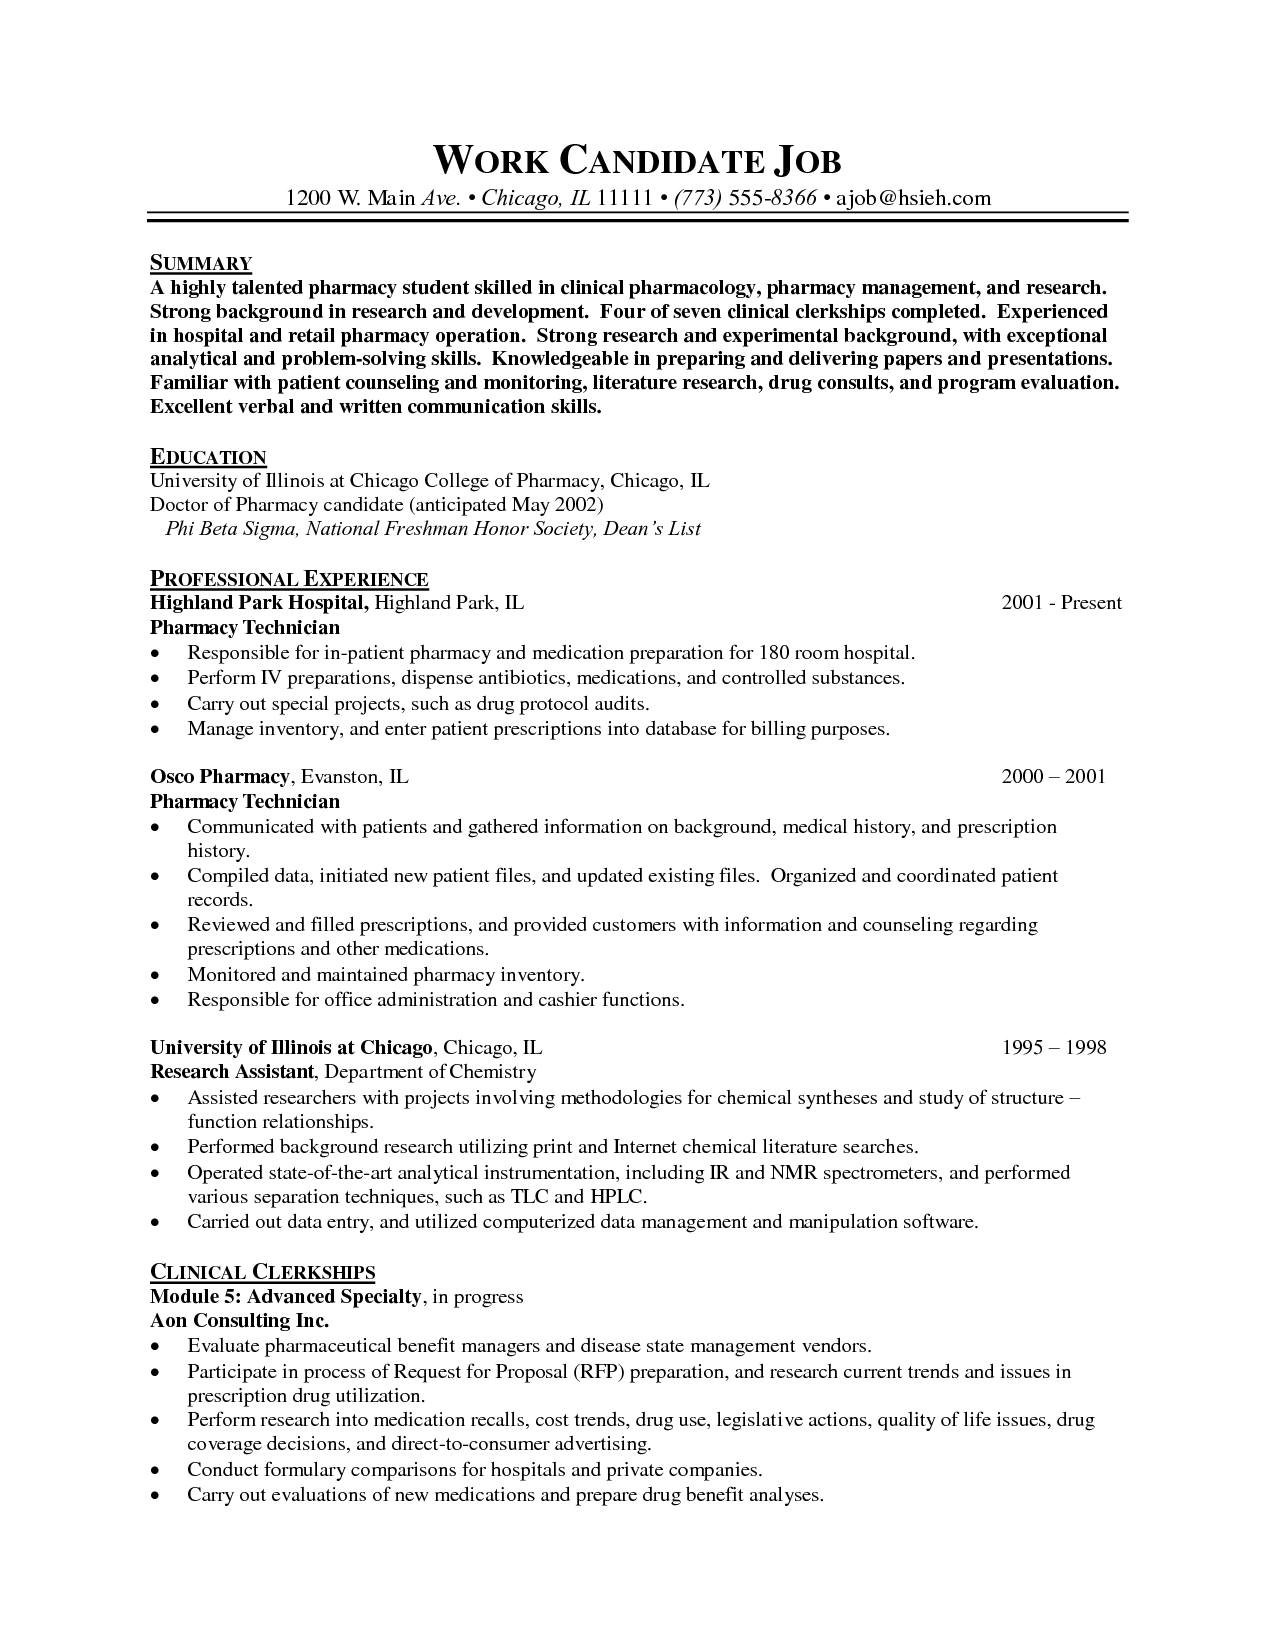 professional resume cover letter sample get instant risk free access to the full pharmacy techniciancover - Sample Pharmacy Technician Resume Cover Letter